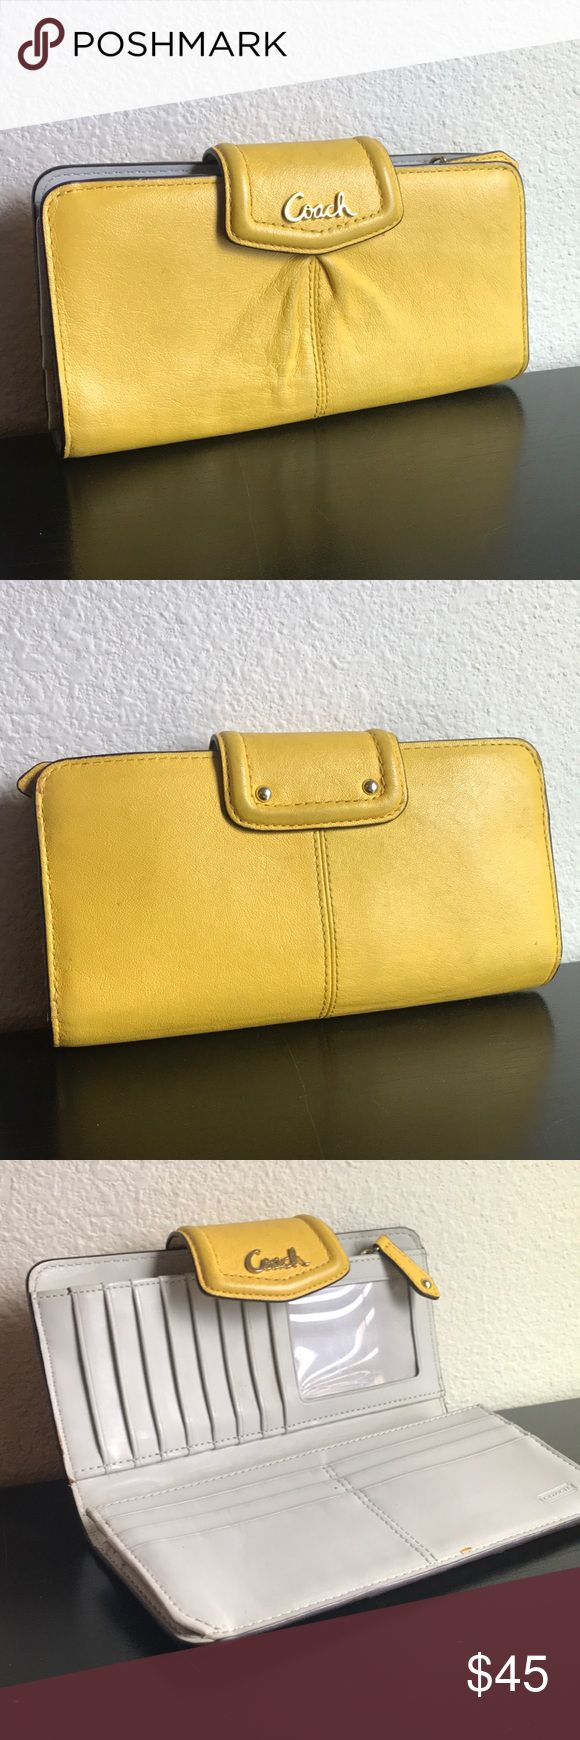 """Yellow coach wallet Coach skinny wallet with snap closure. 4 Full length bill compartments, zipper coin pocket. 15 credit card slots, ID window (slight tear). 7.5"""" x 3.75"""" Coach Bags Wallets"""